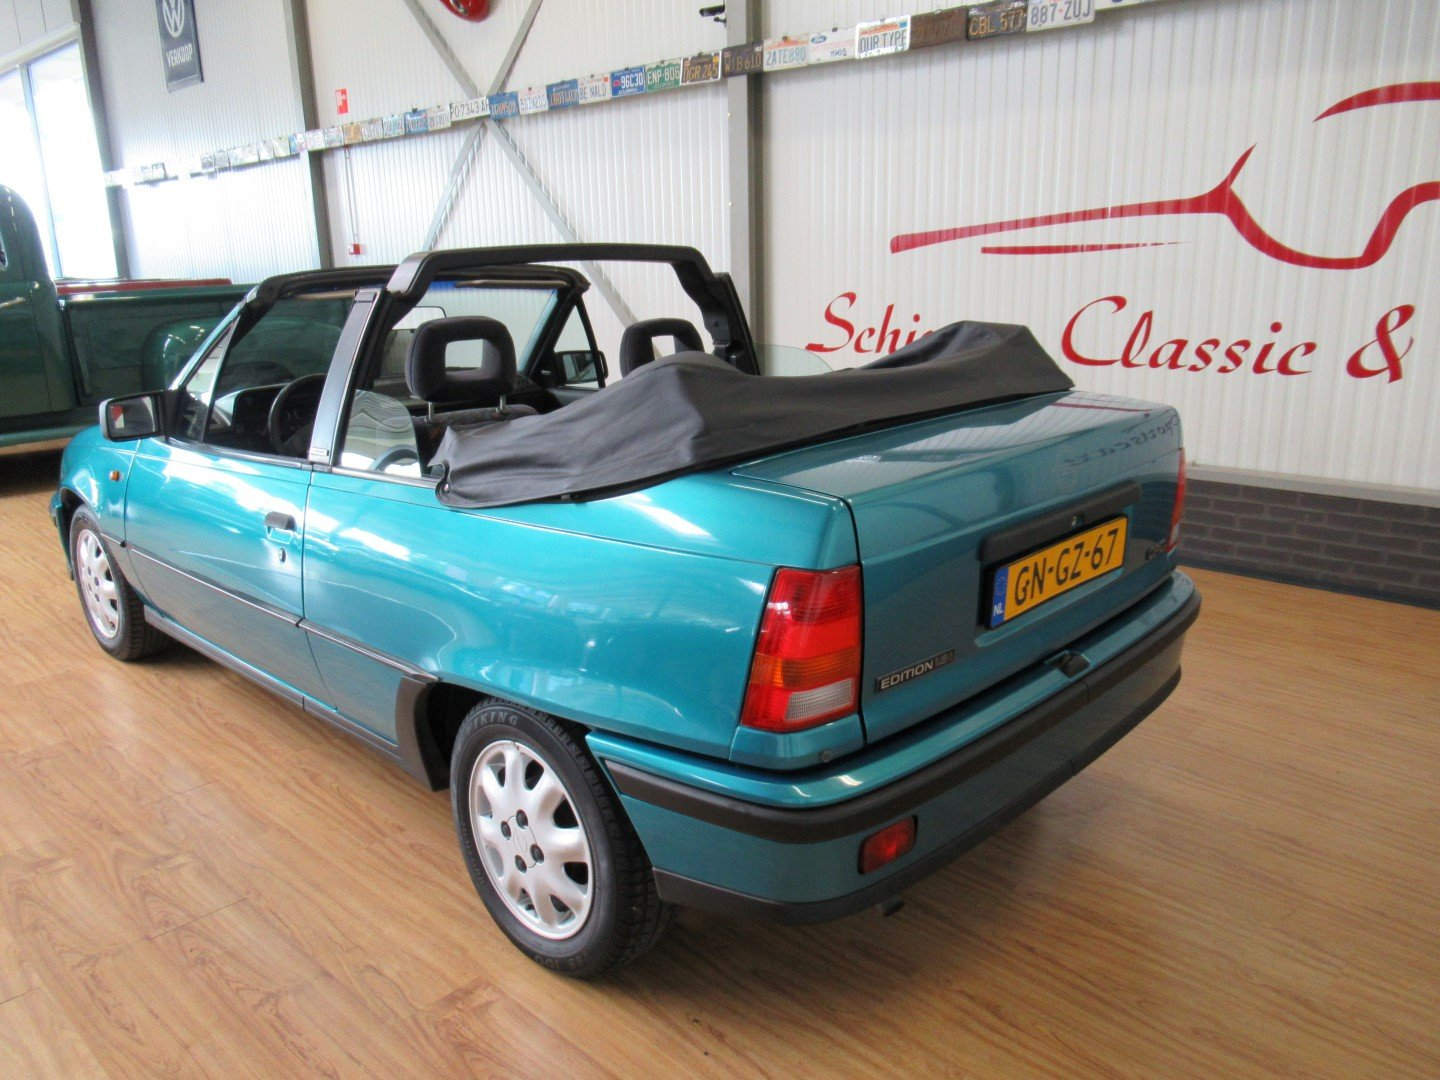 1993 Opel Kadett E Cabrio Edition 1.6i Bertone last model year For Sale (picture 3 of 6)